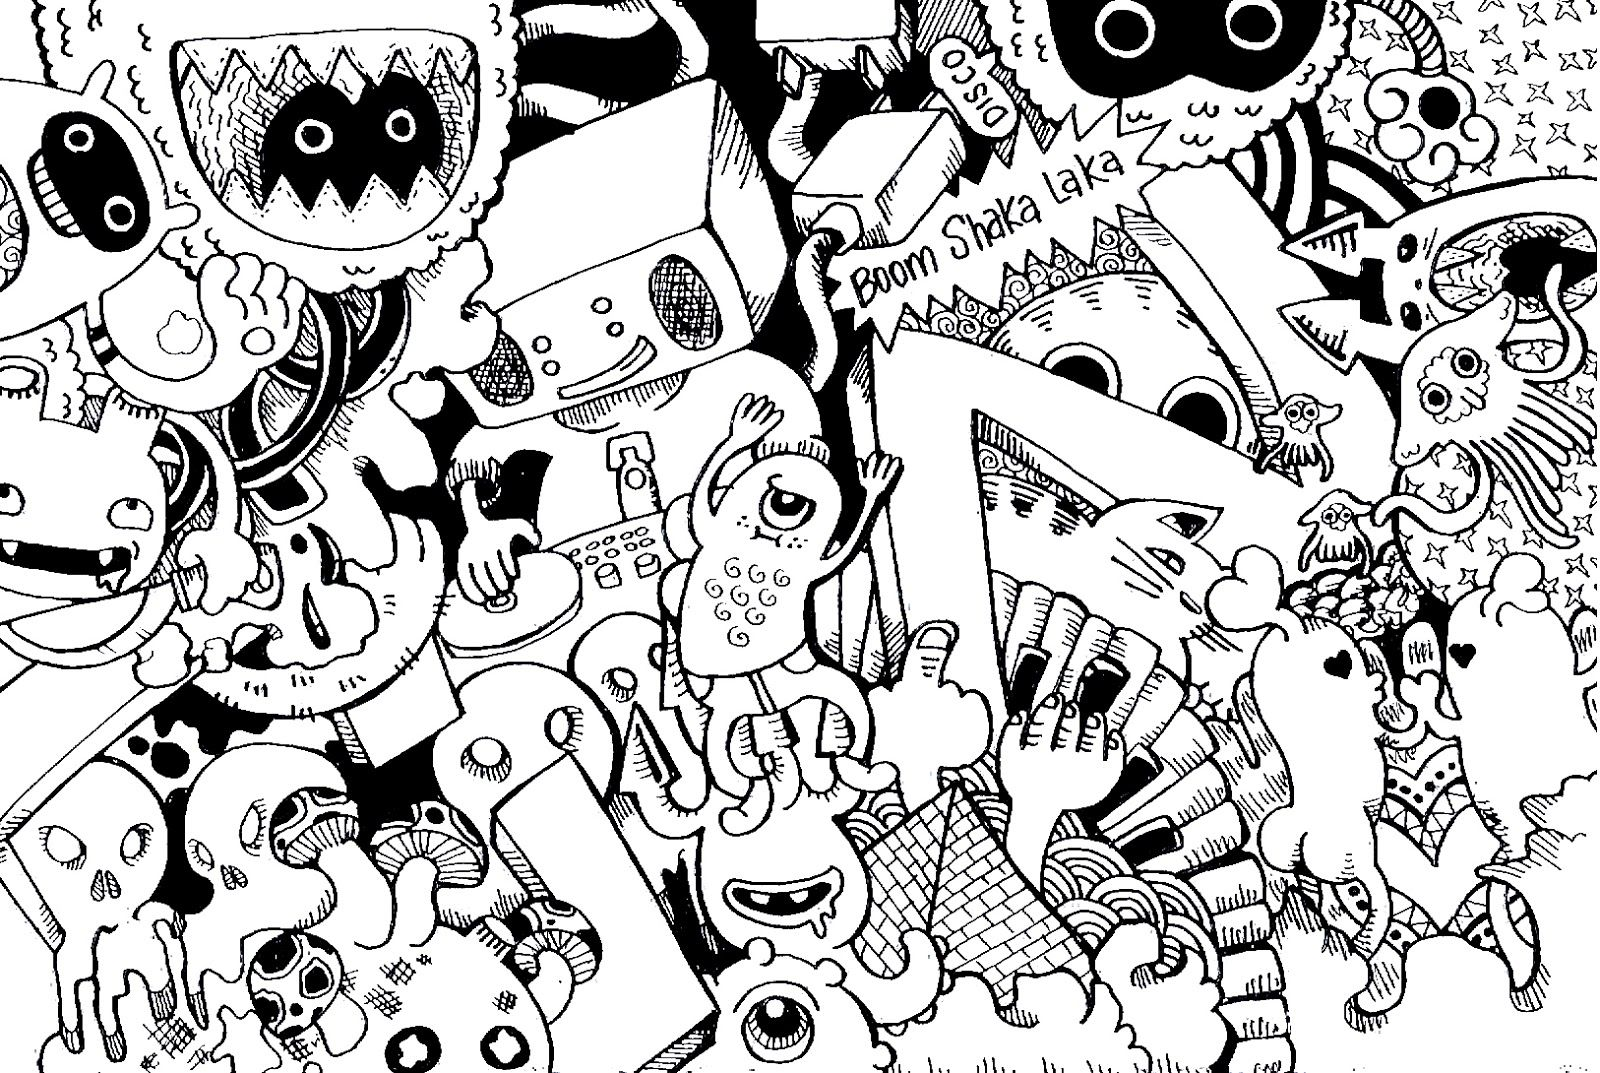 free doodle art coloring pages abstract coloring pages pinterest doodles and adult coloring